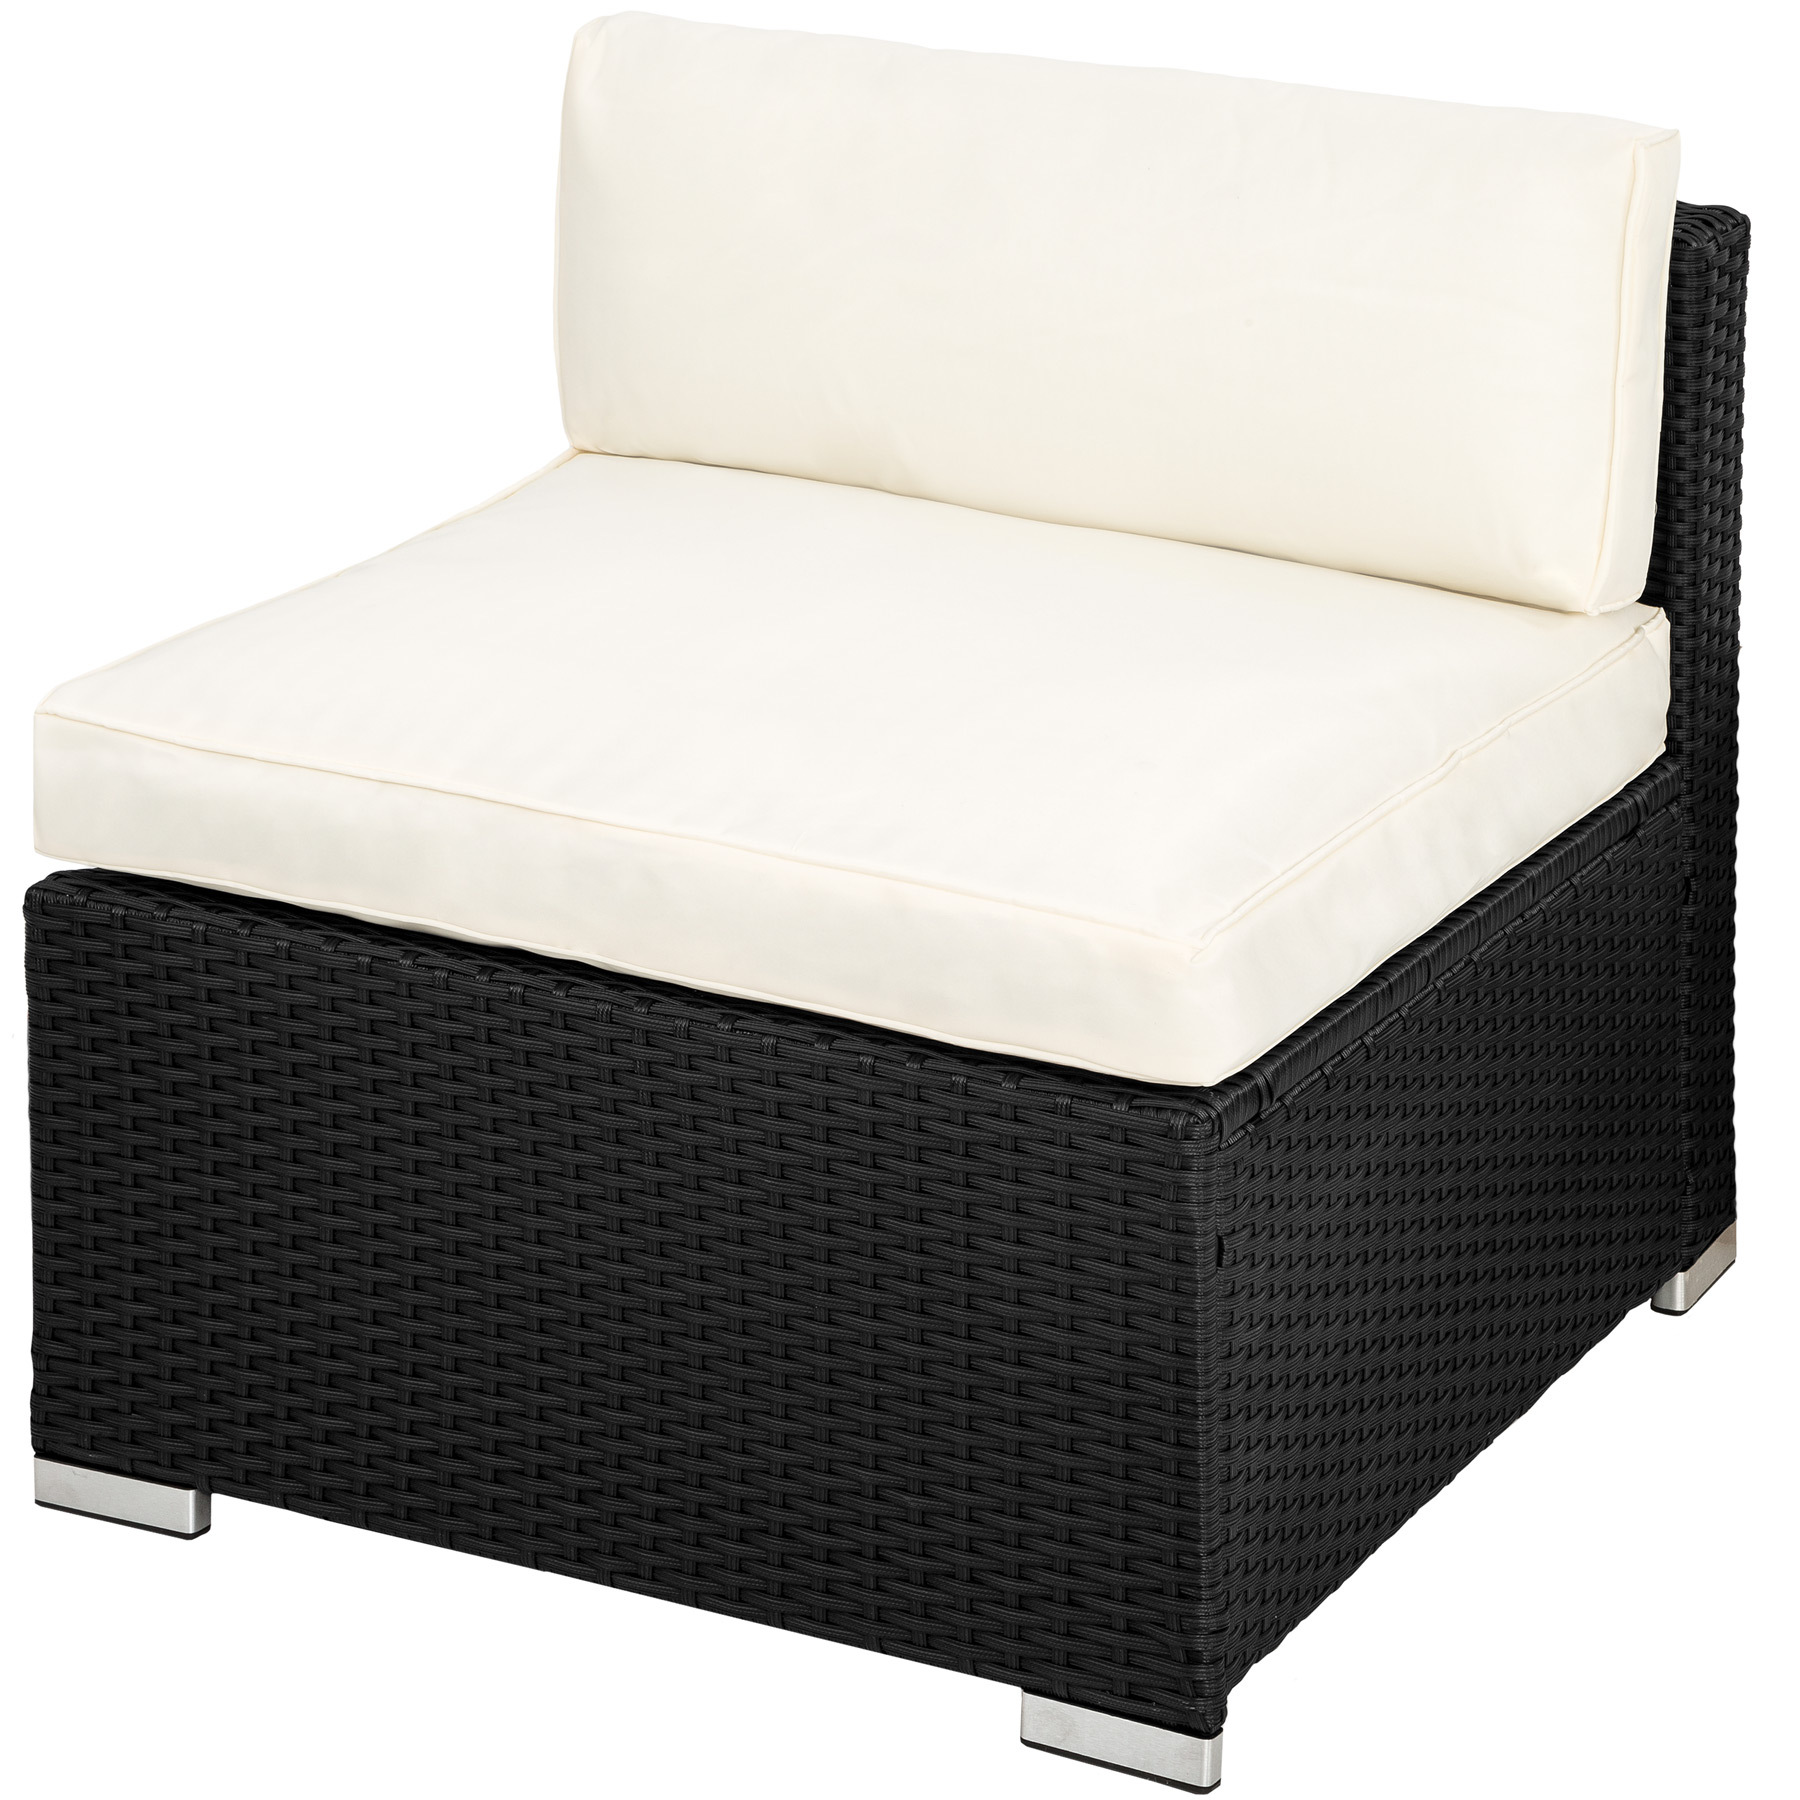 poly rattan alu garnitur sitzgruppe rattanm bel gartengernitur lounge schwarz ebay. Black Bedroom Furniture Sets. Home Design Ideas